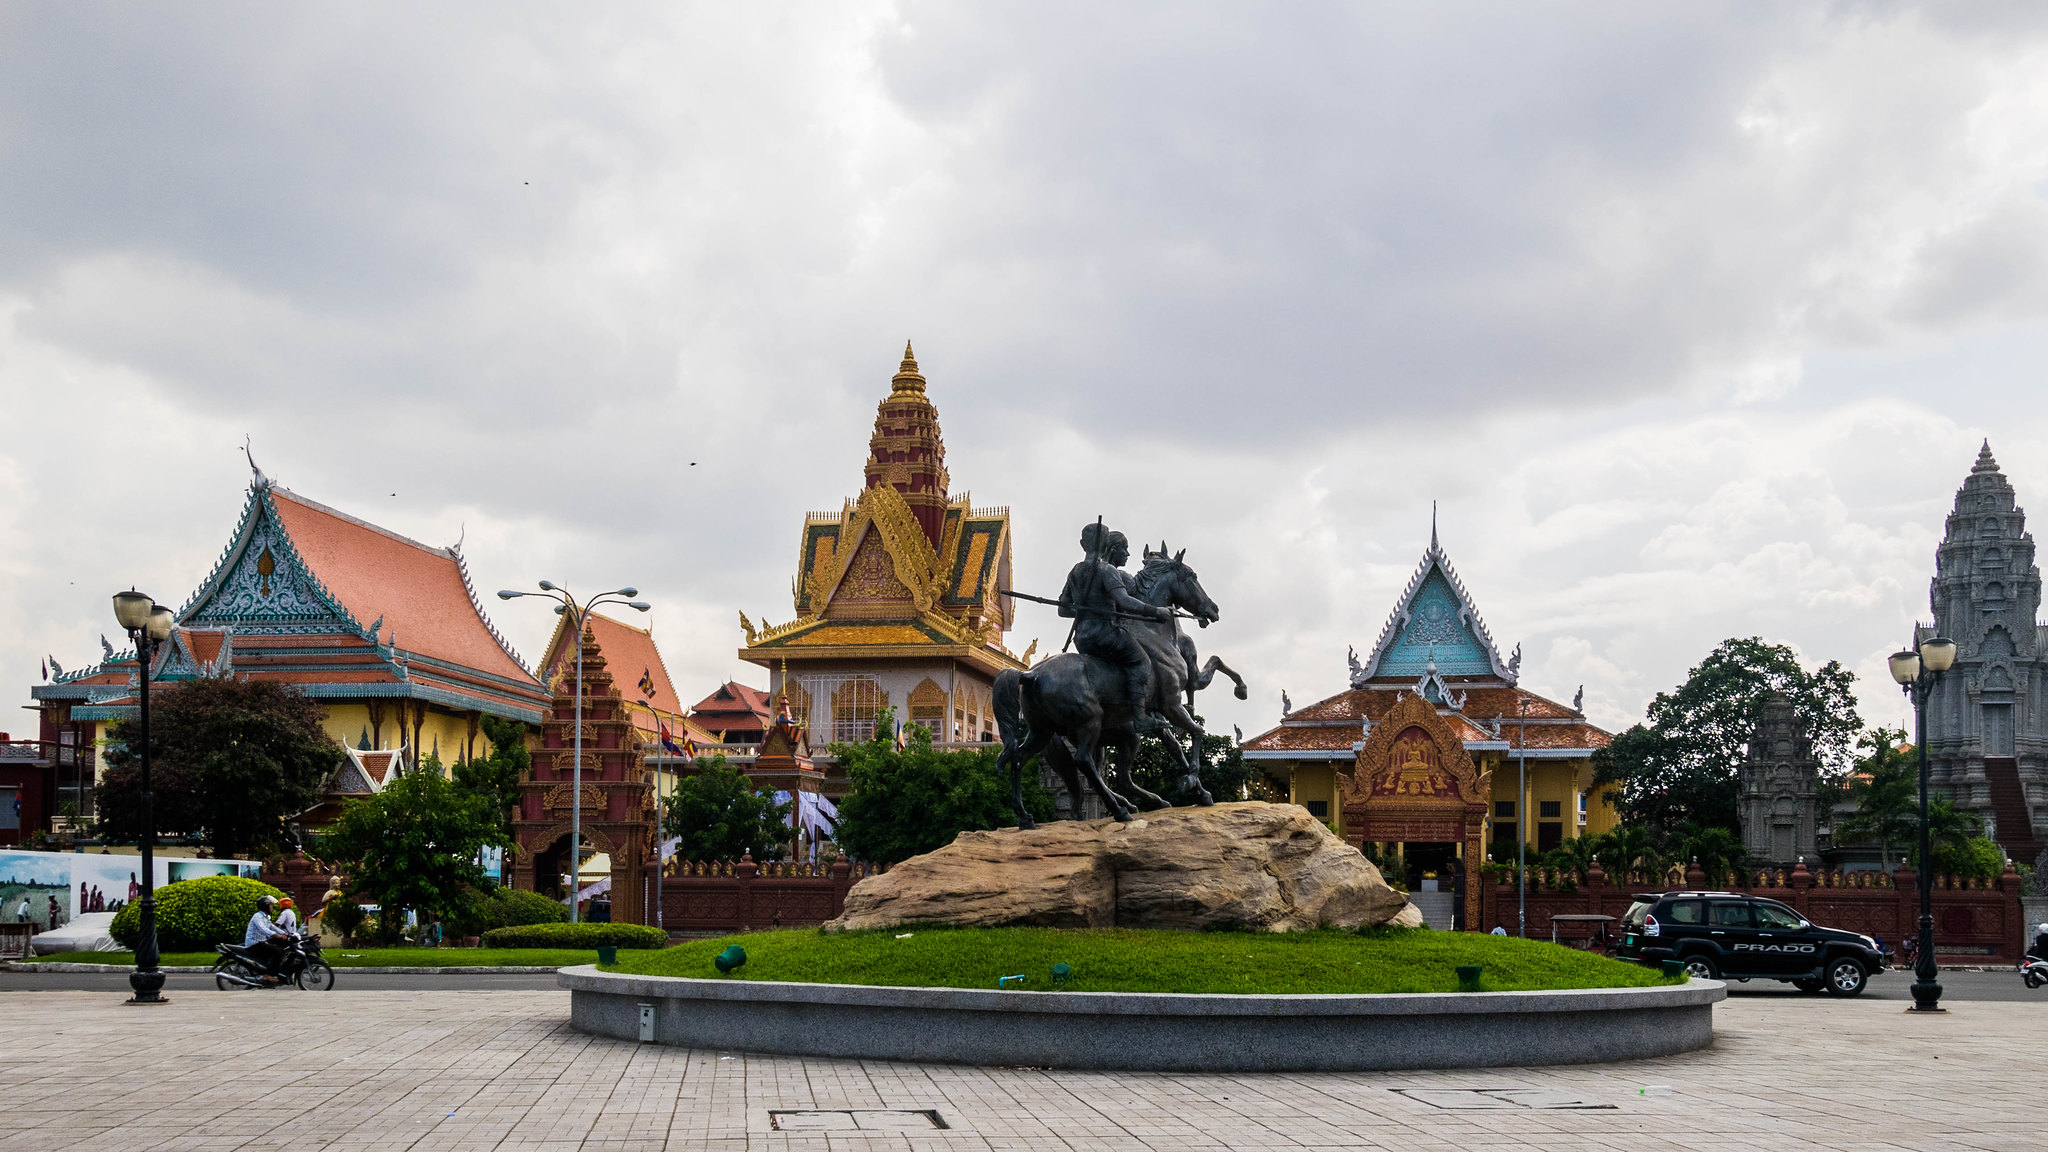 Royal Palace in Phnom Penh #1